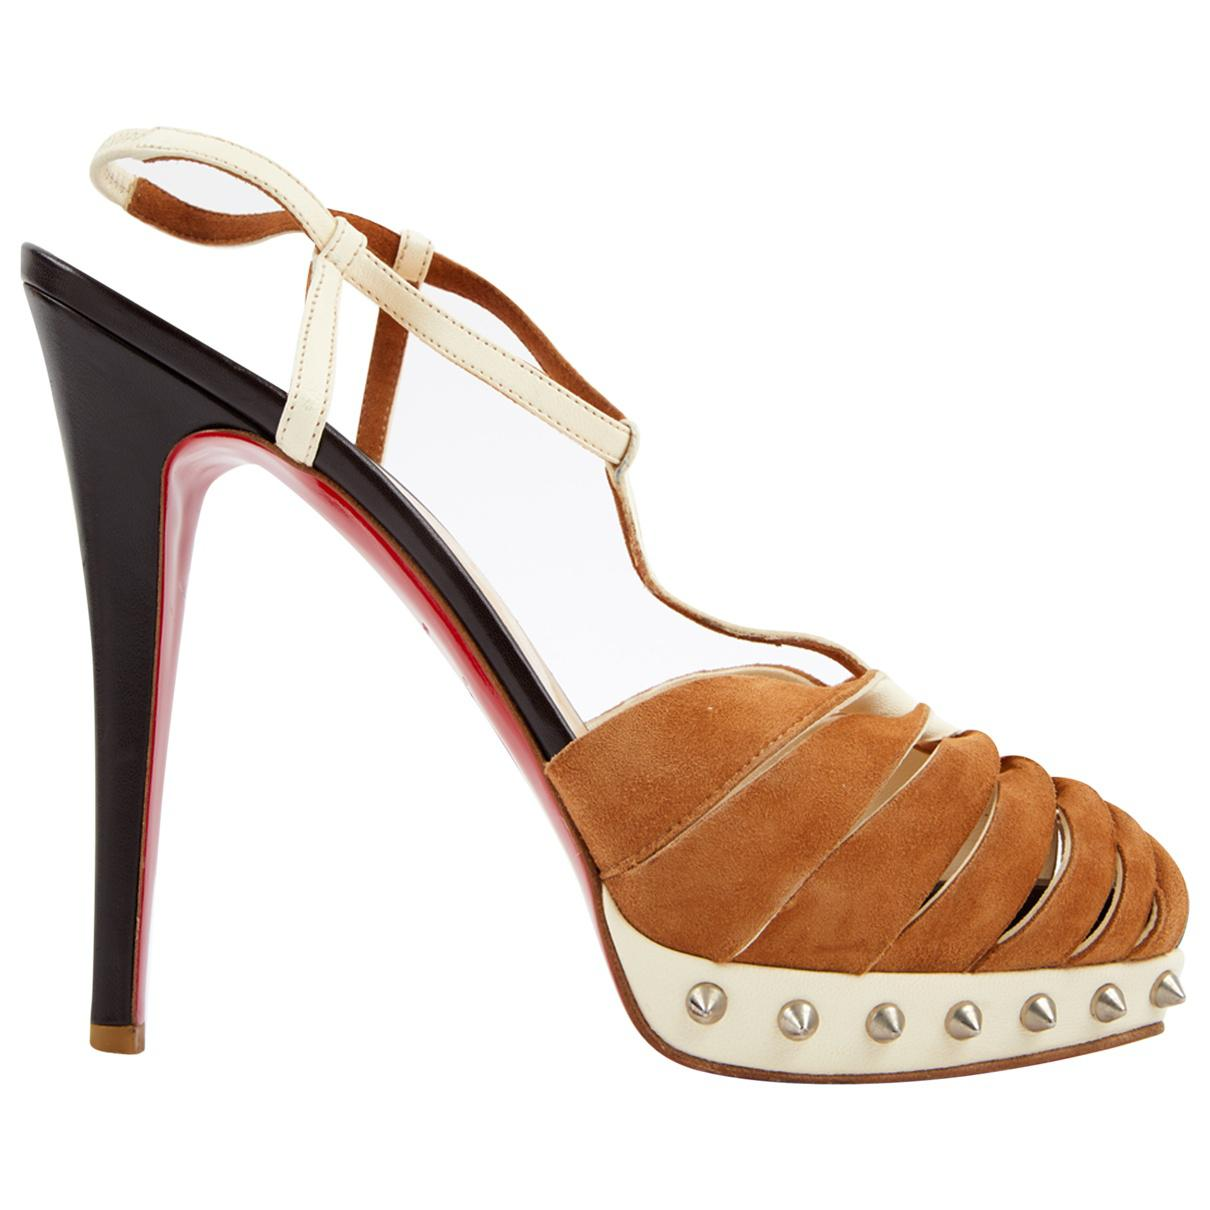 Christian Louboutin Camel Suede Sandals